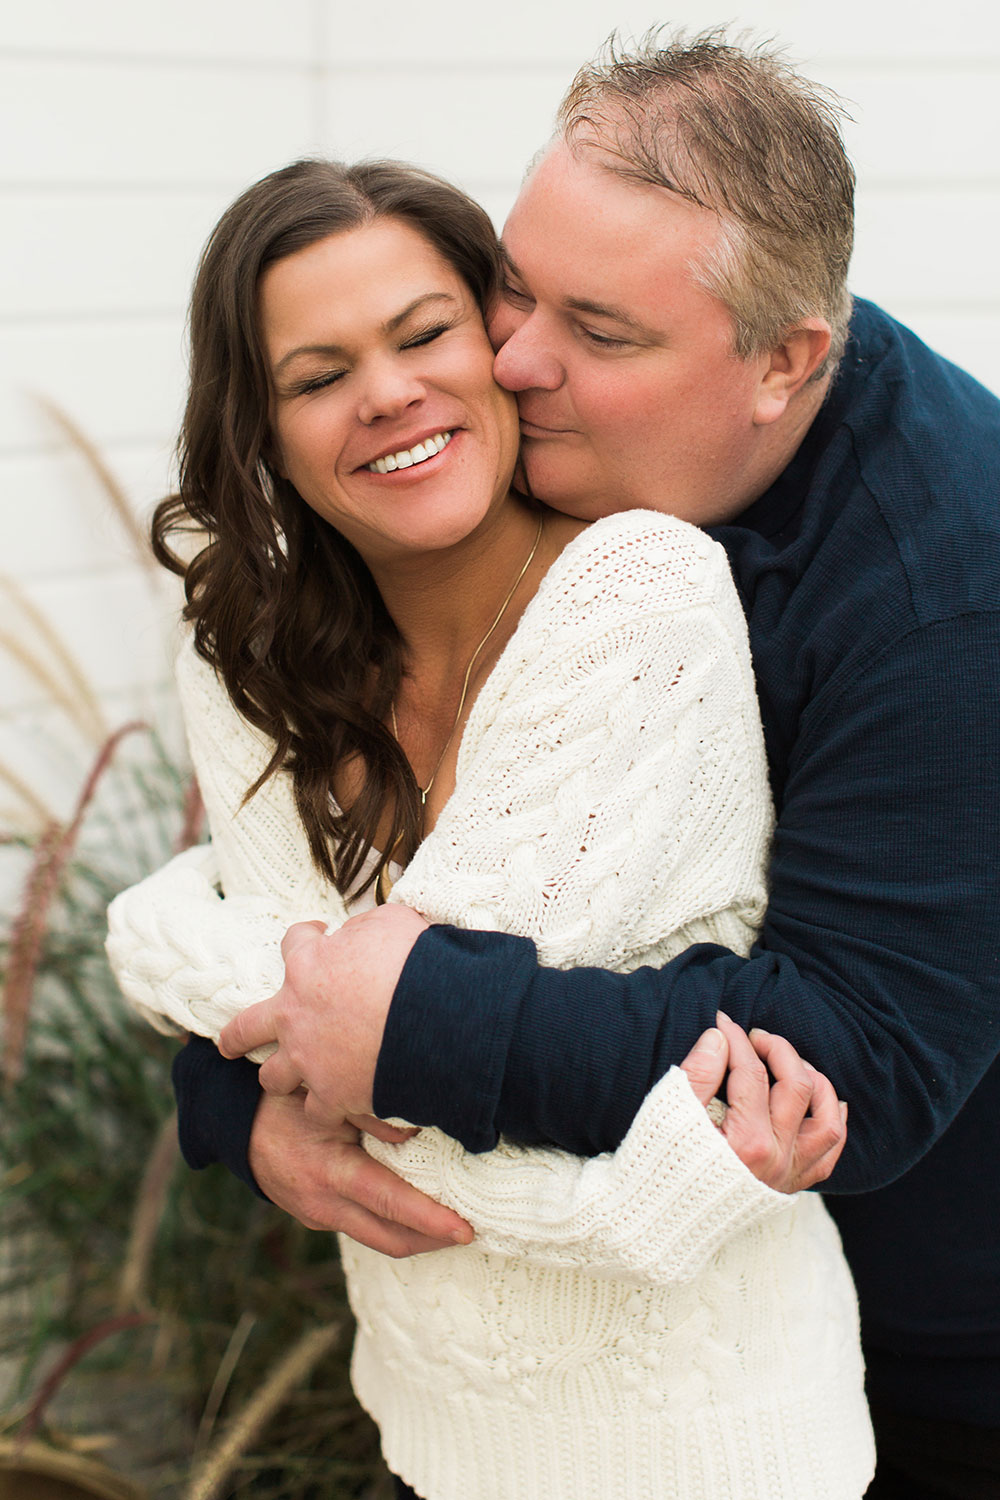 Mulhalls_Omaha_Fall_Engagement_Session_Kerry_Jay_6.jpg